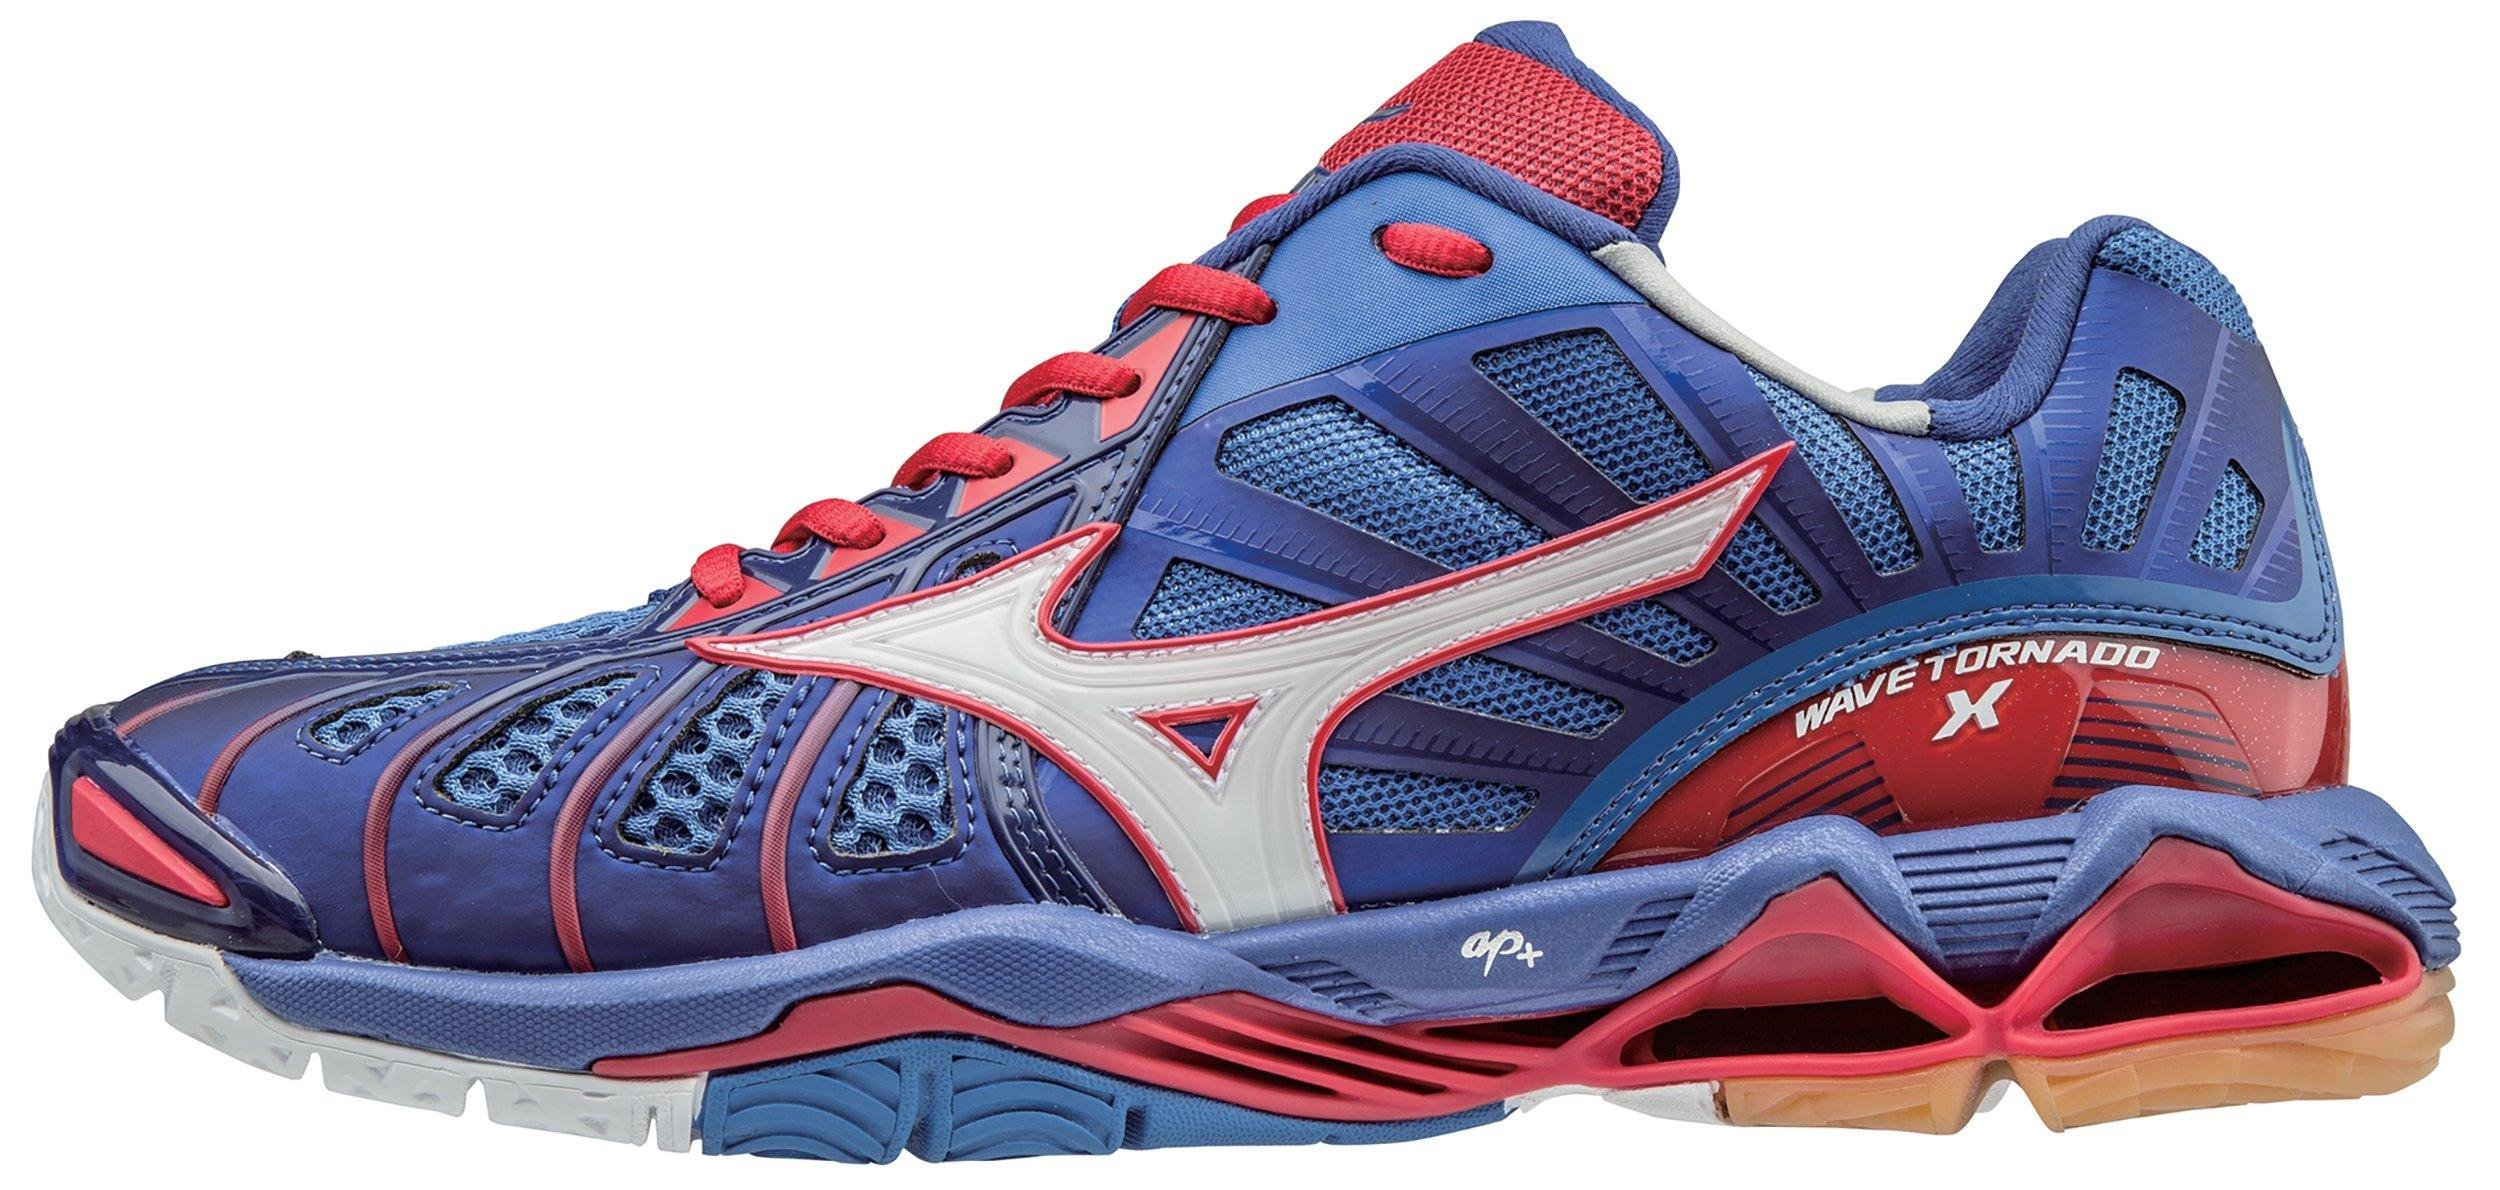 Mizuno Men's Wave Tornado X Volleyball Shoe, Mazarine Blue/Lollipop, 12.5 D US